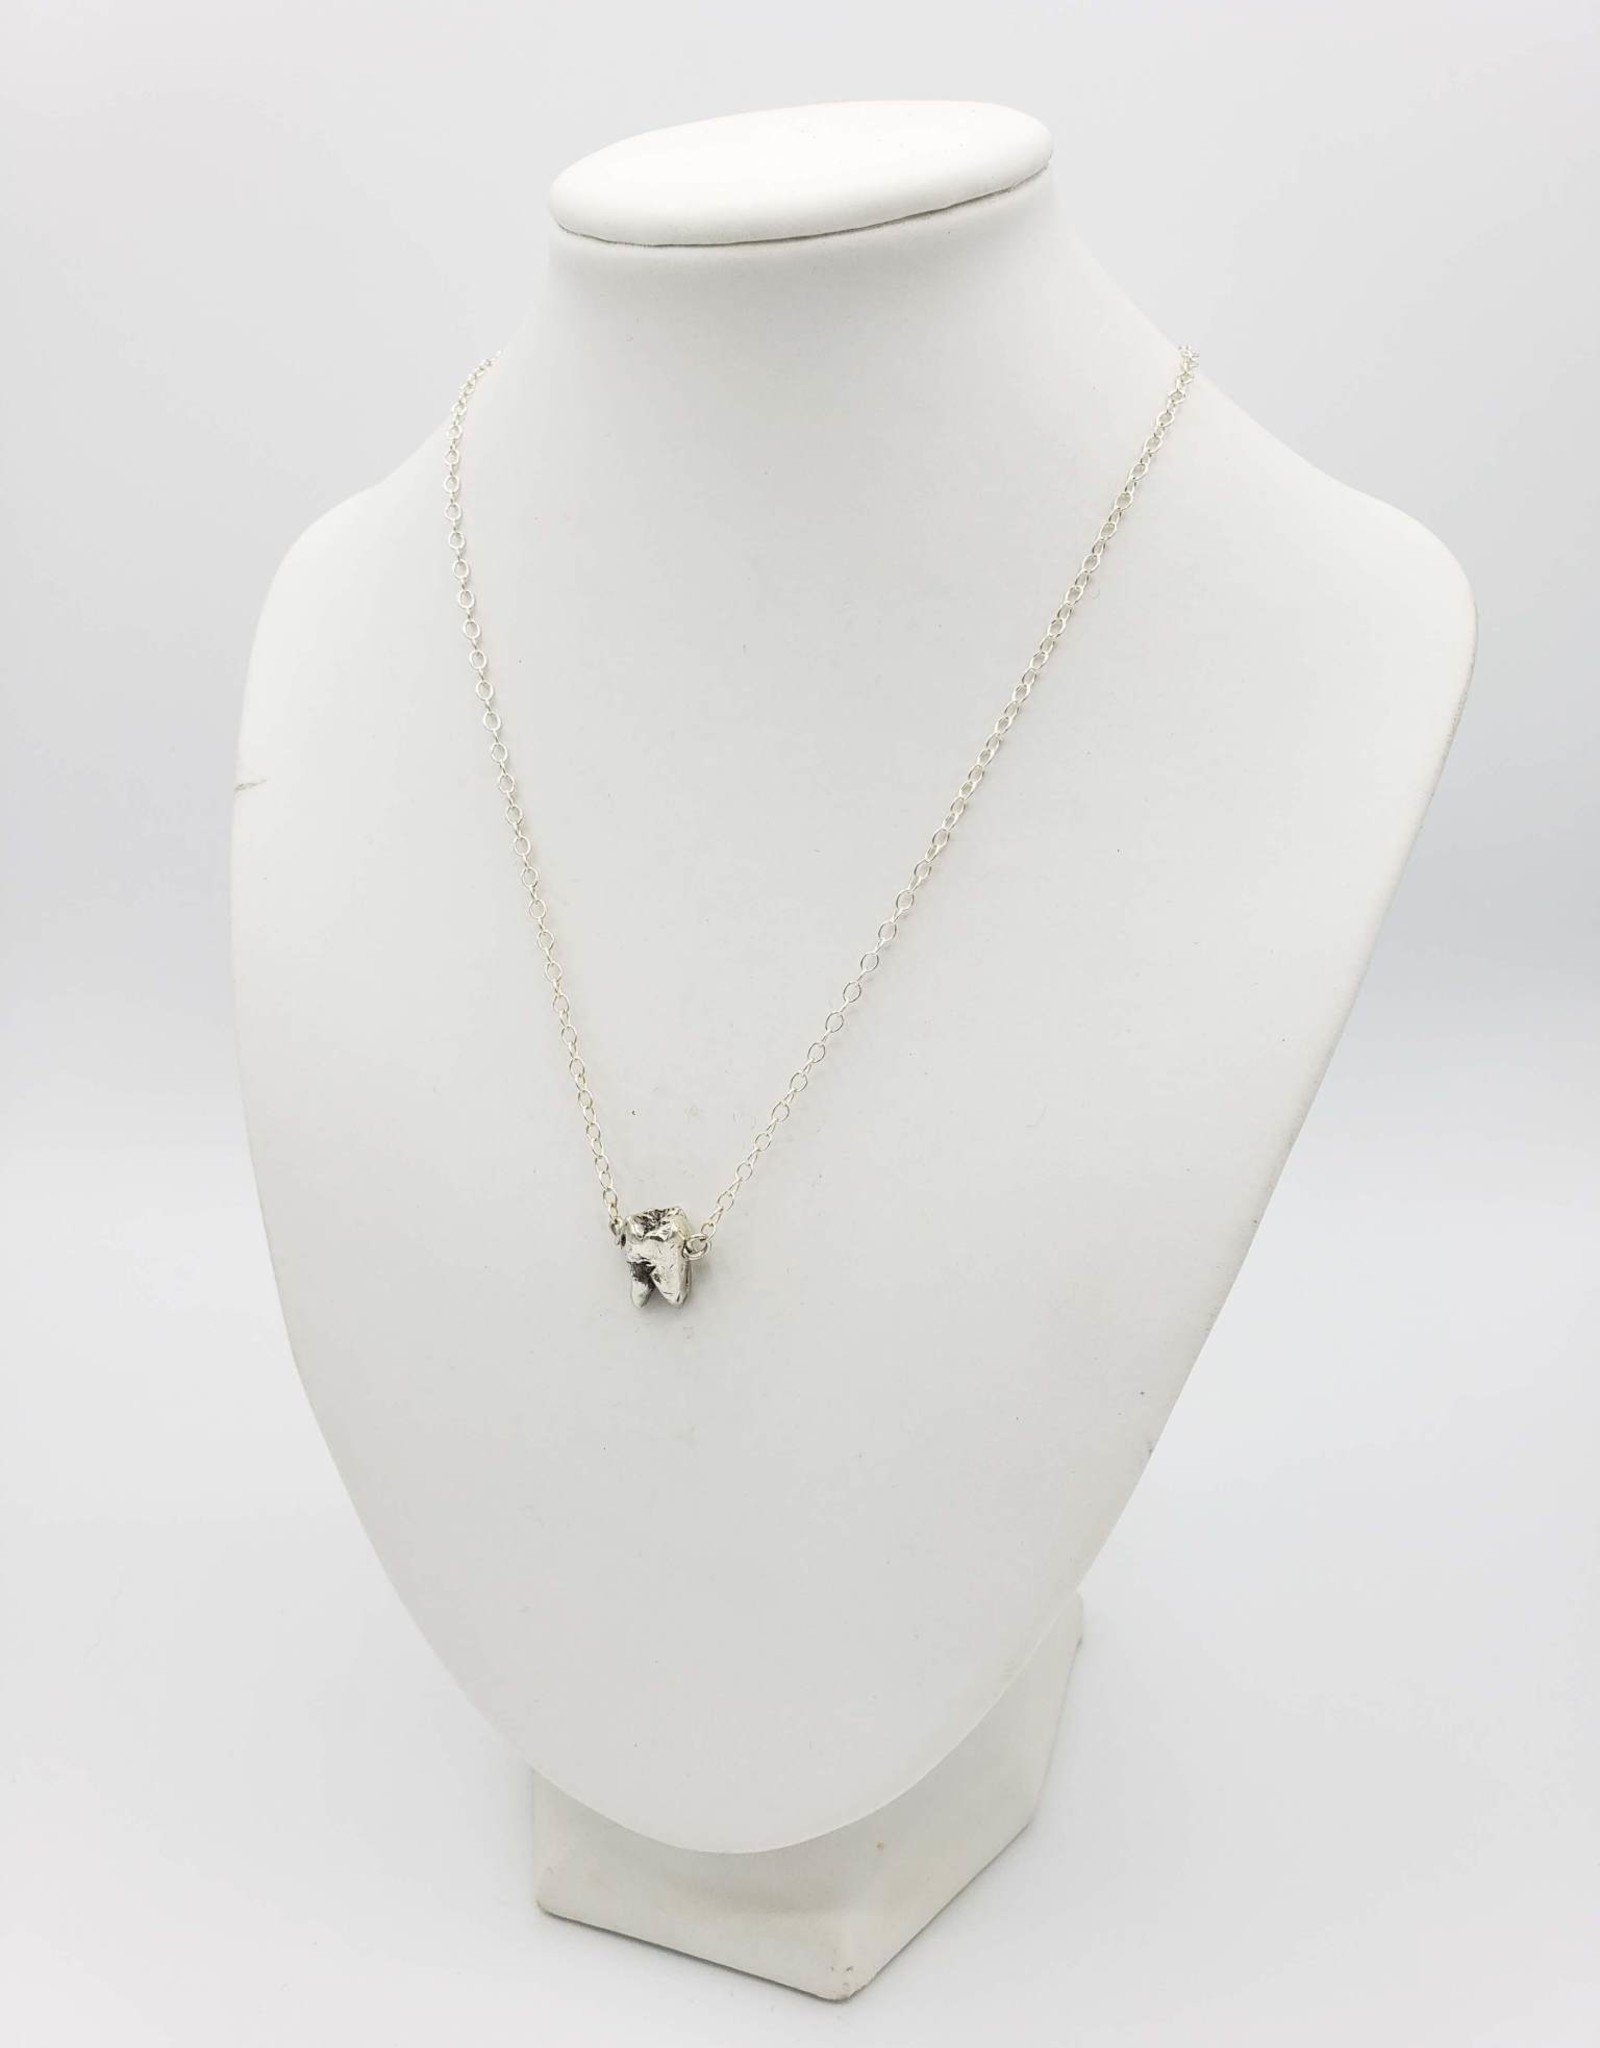 Redux Single Tooth Sterling Silver Necklace - double split root, high polish sterling chain